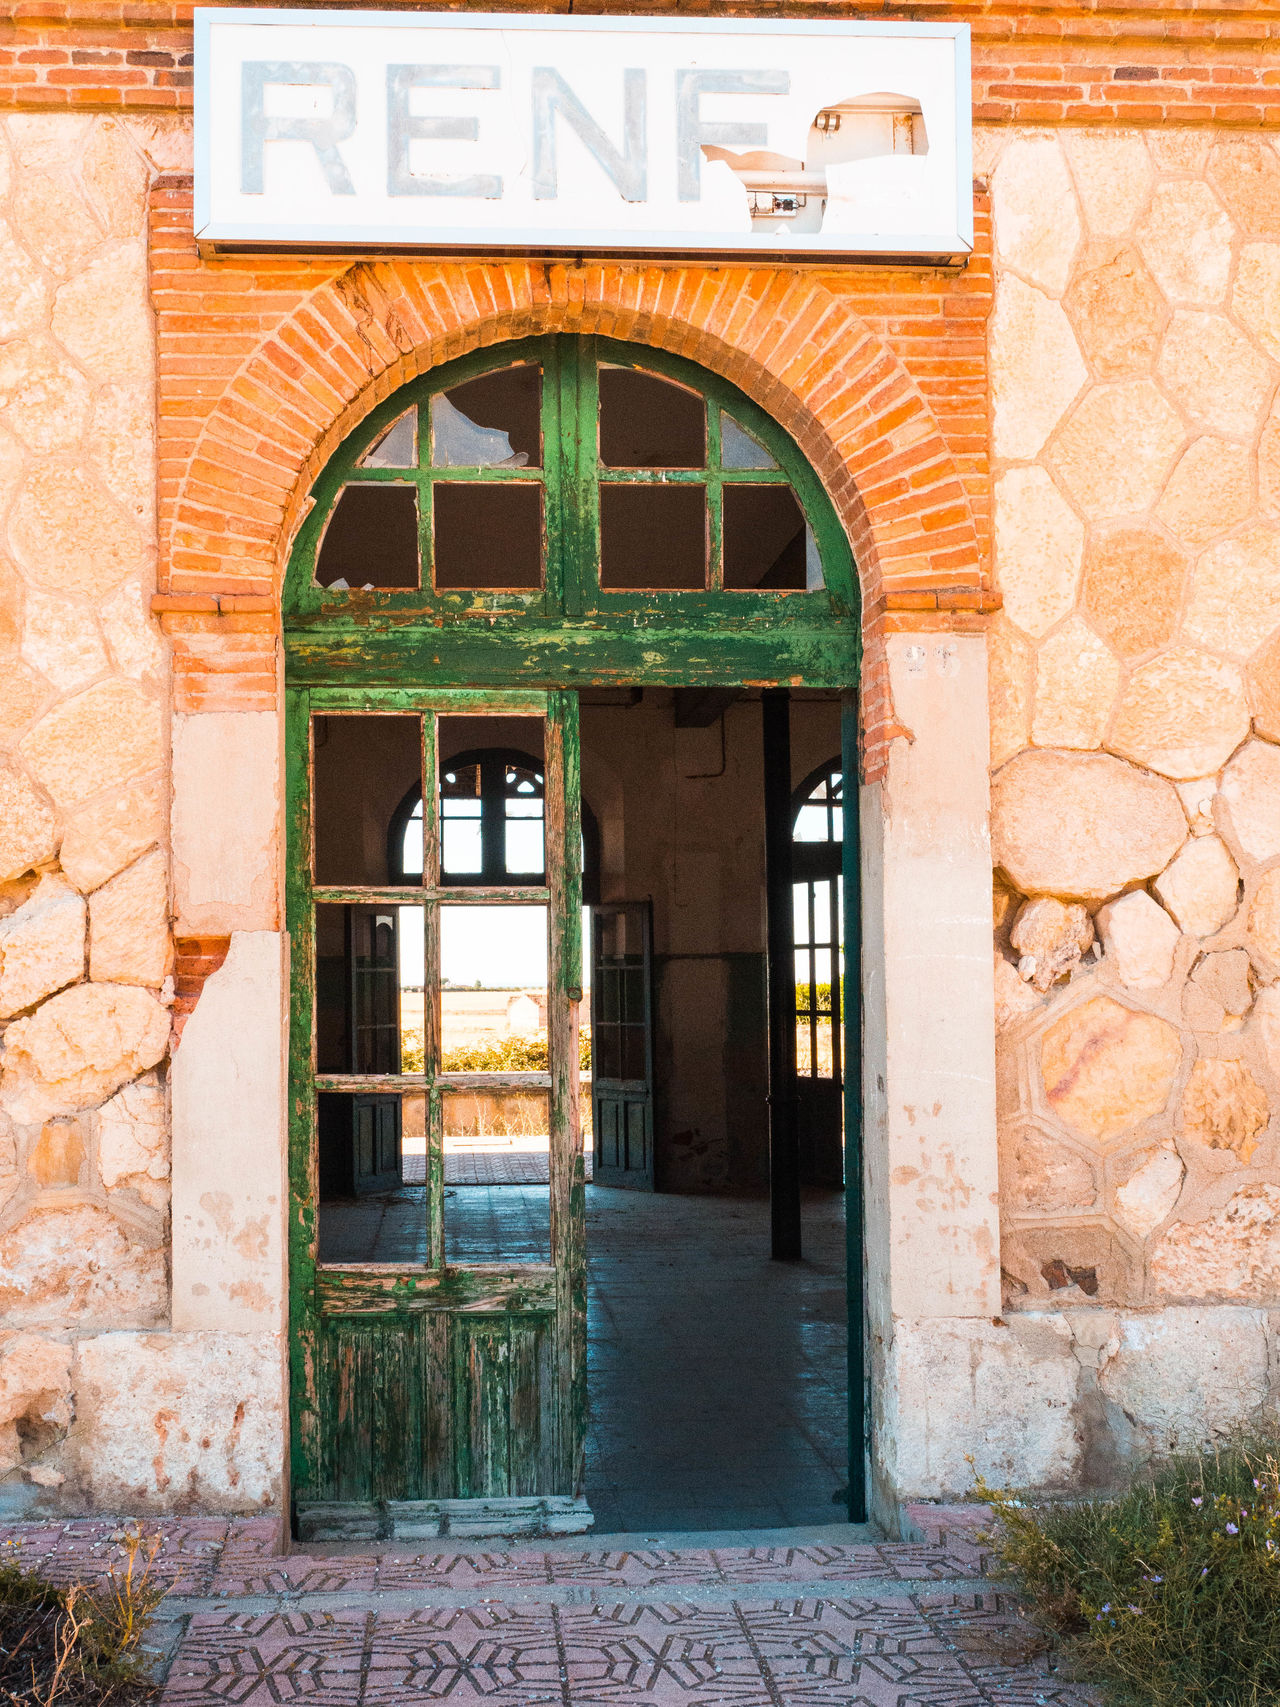 Architecture Building Exterior Built Structure Day Door Doorway Entrance Exit Sign No People Old Buildings Old Station Outdoors SPAIN